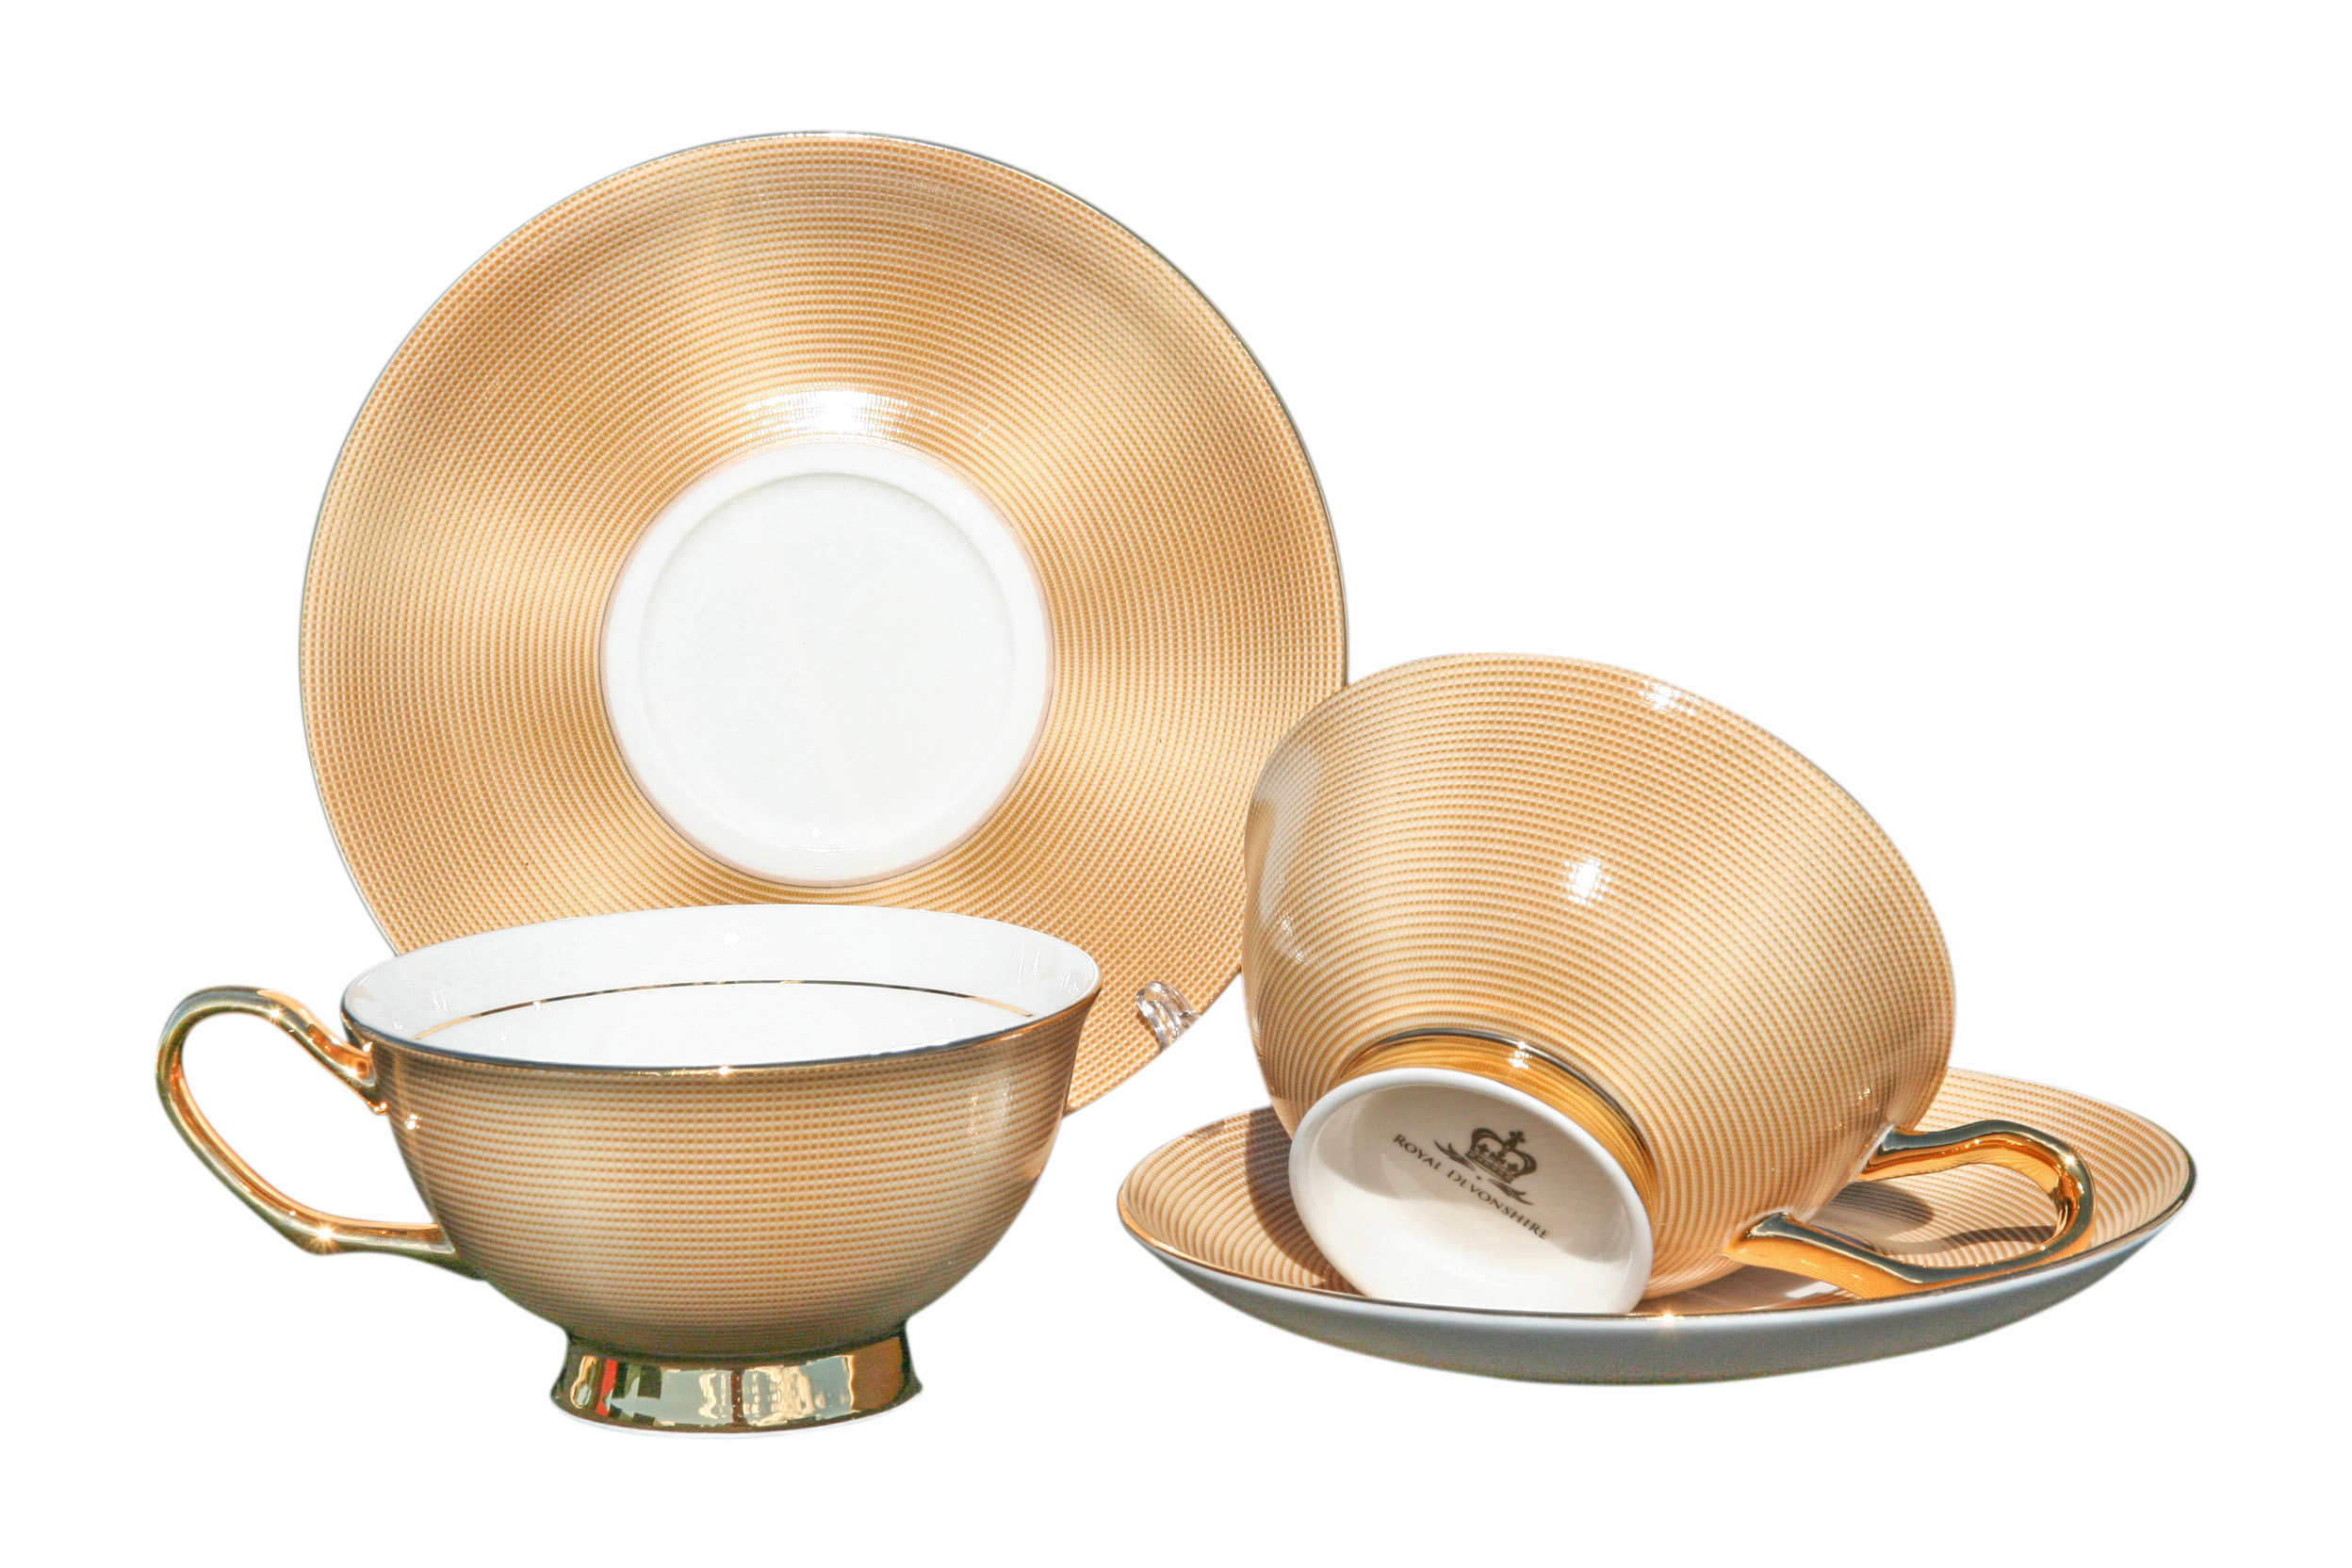 Egyptian Gold 2 Cup & Saucer Set